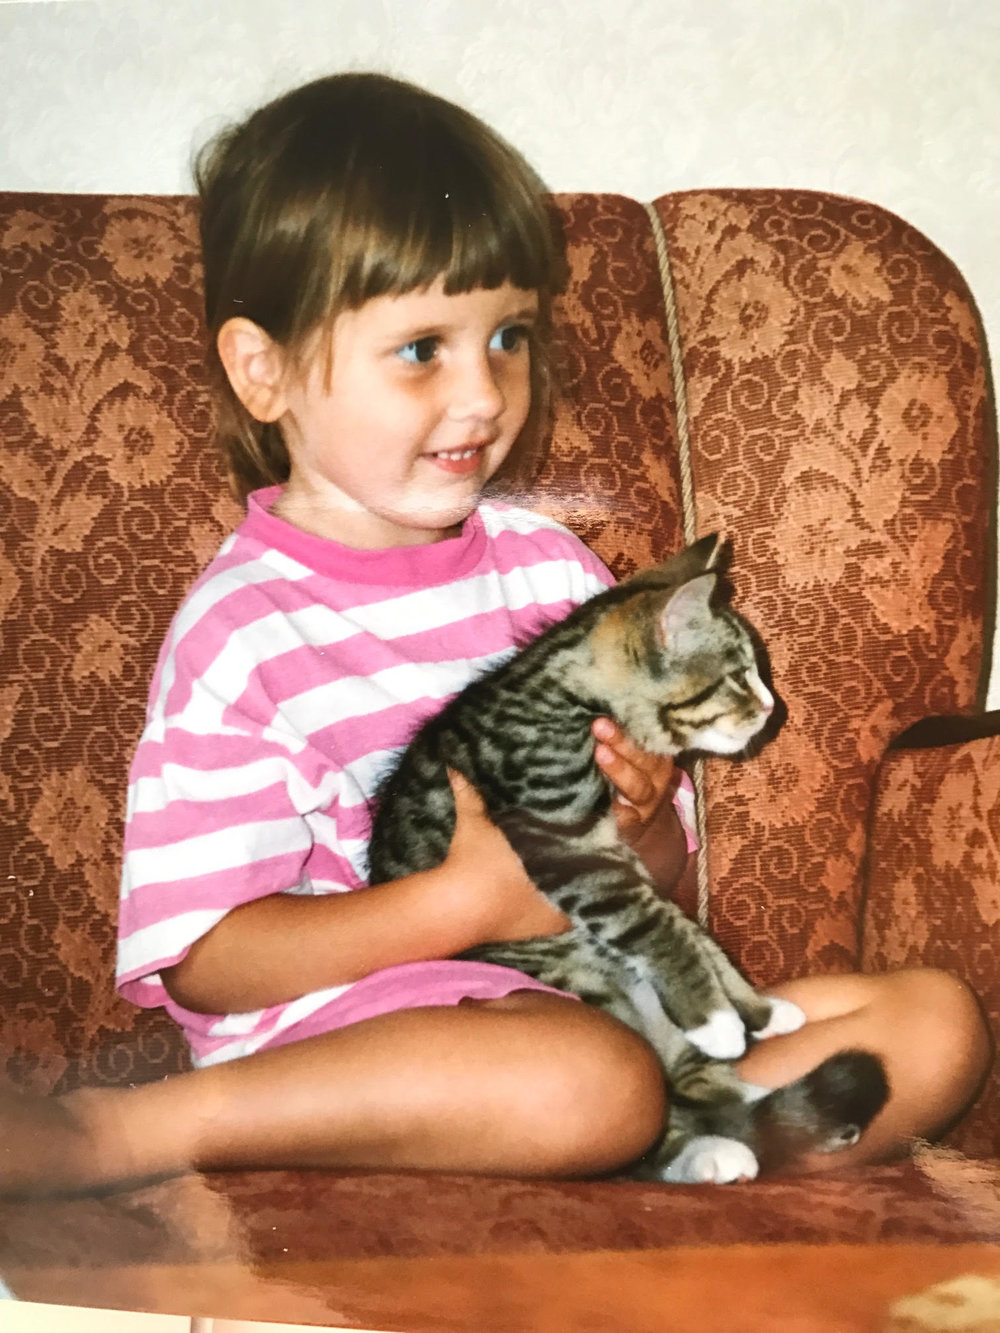 Here I am when I was four years old, with our first cat, Simba. The same year I decided I wanted to become a vet.